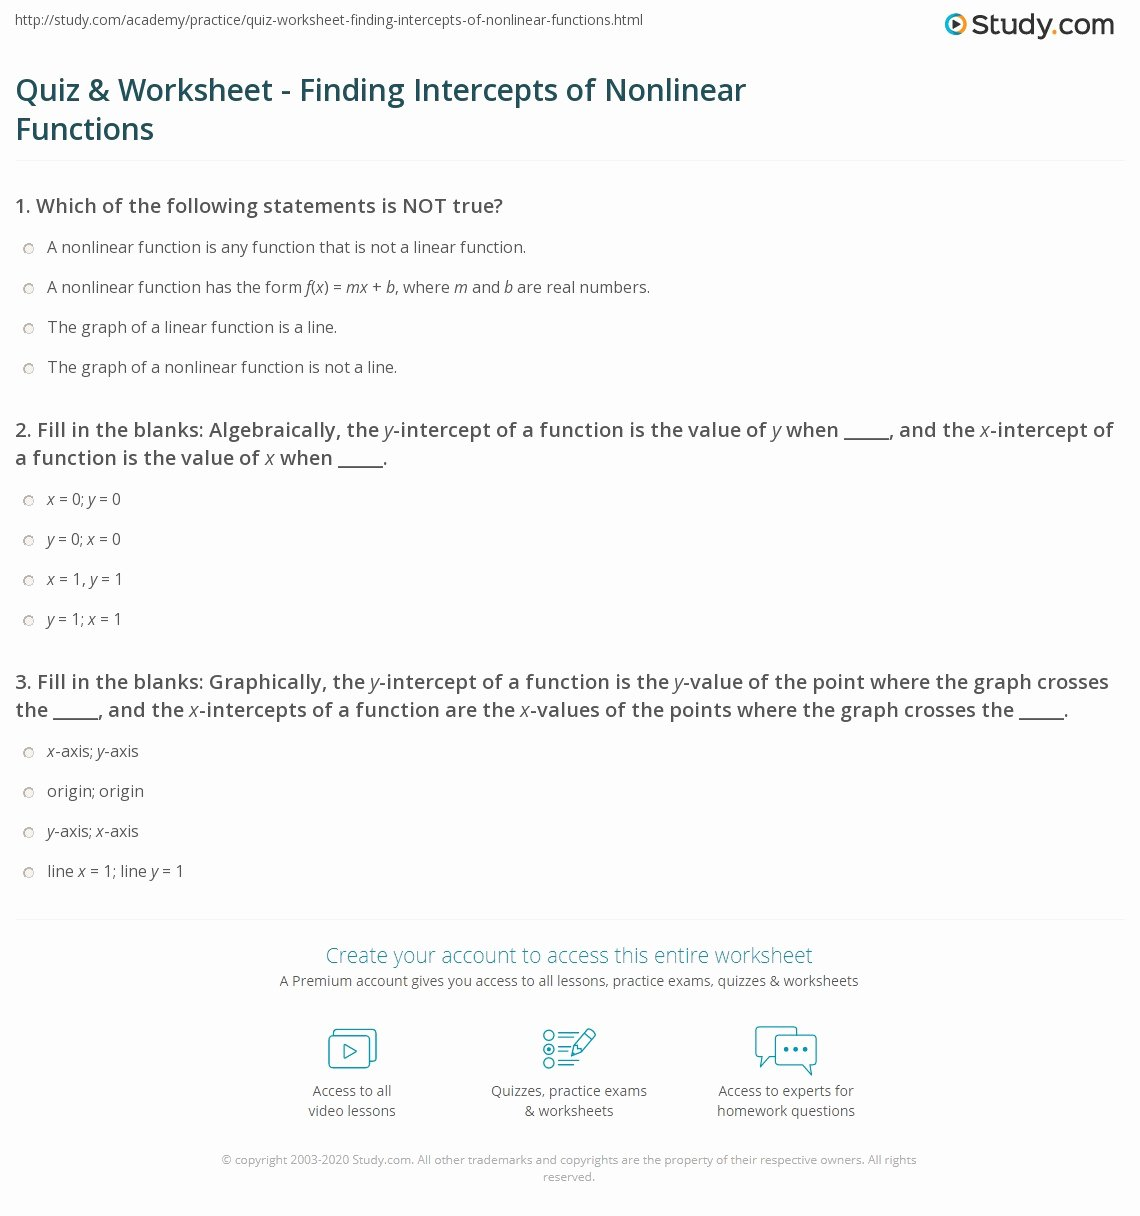 Linear and Nonlinear Functions Worksheet Kids Quiz & Worksheet Finding Intercepts Of Nonlinear Functions